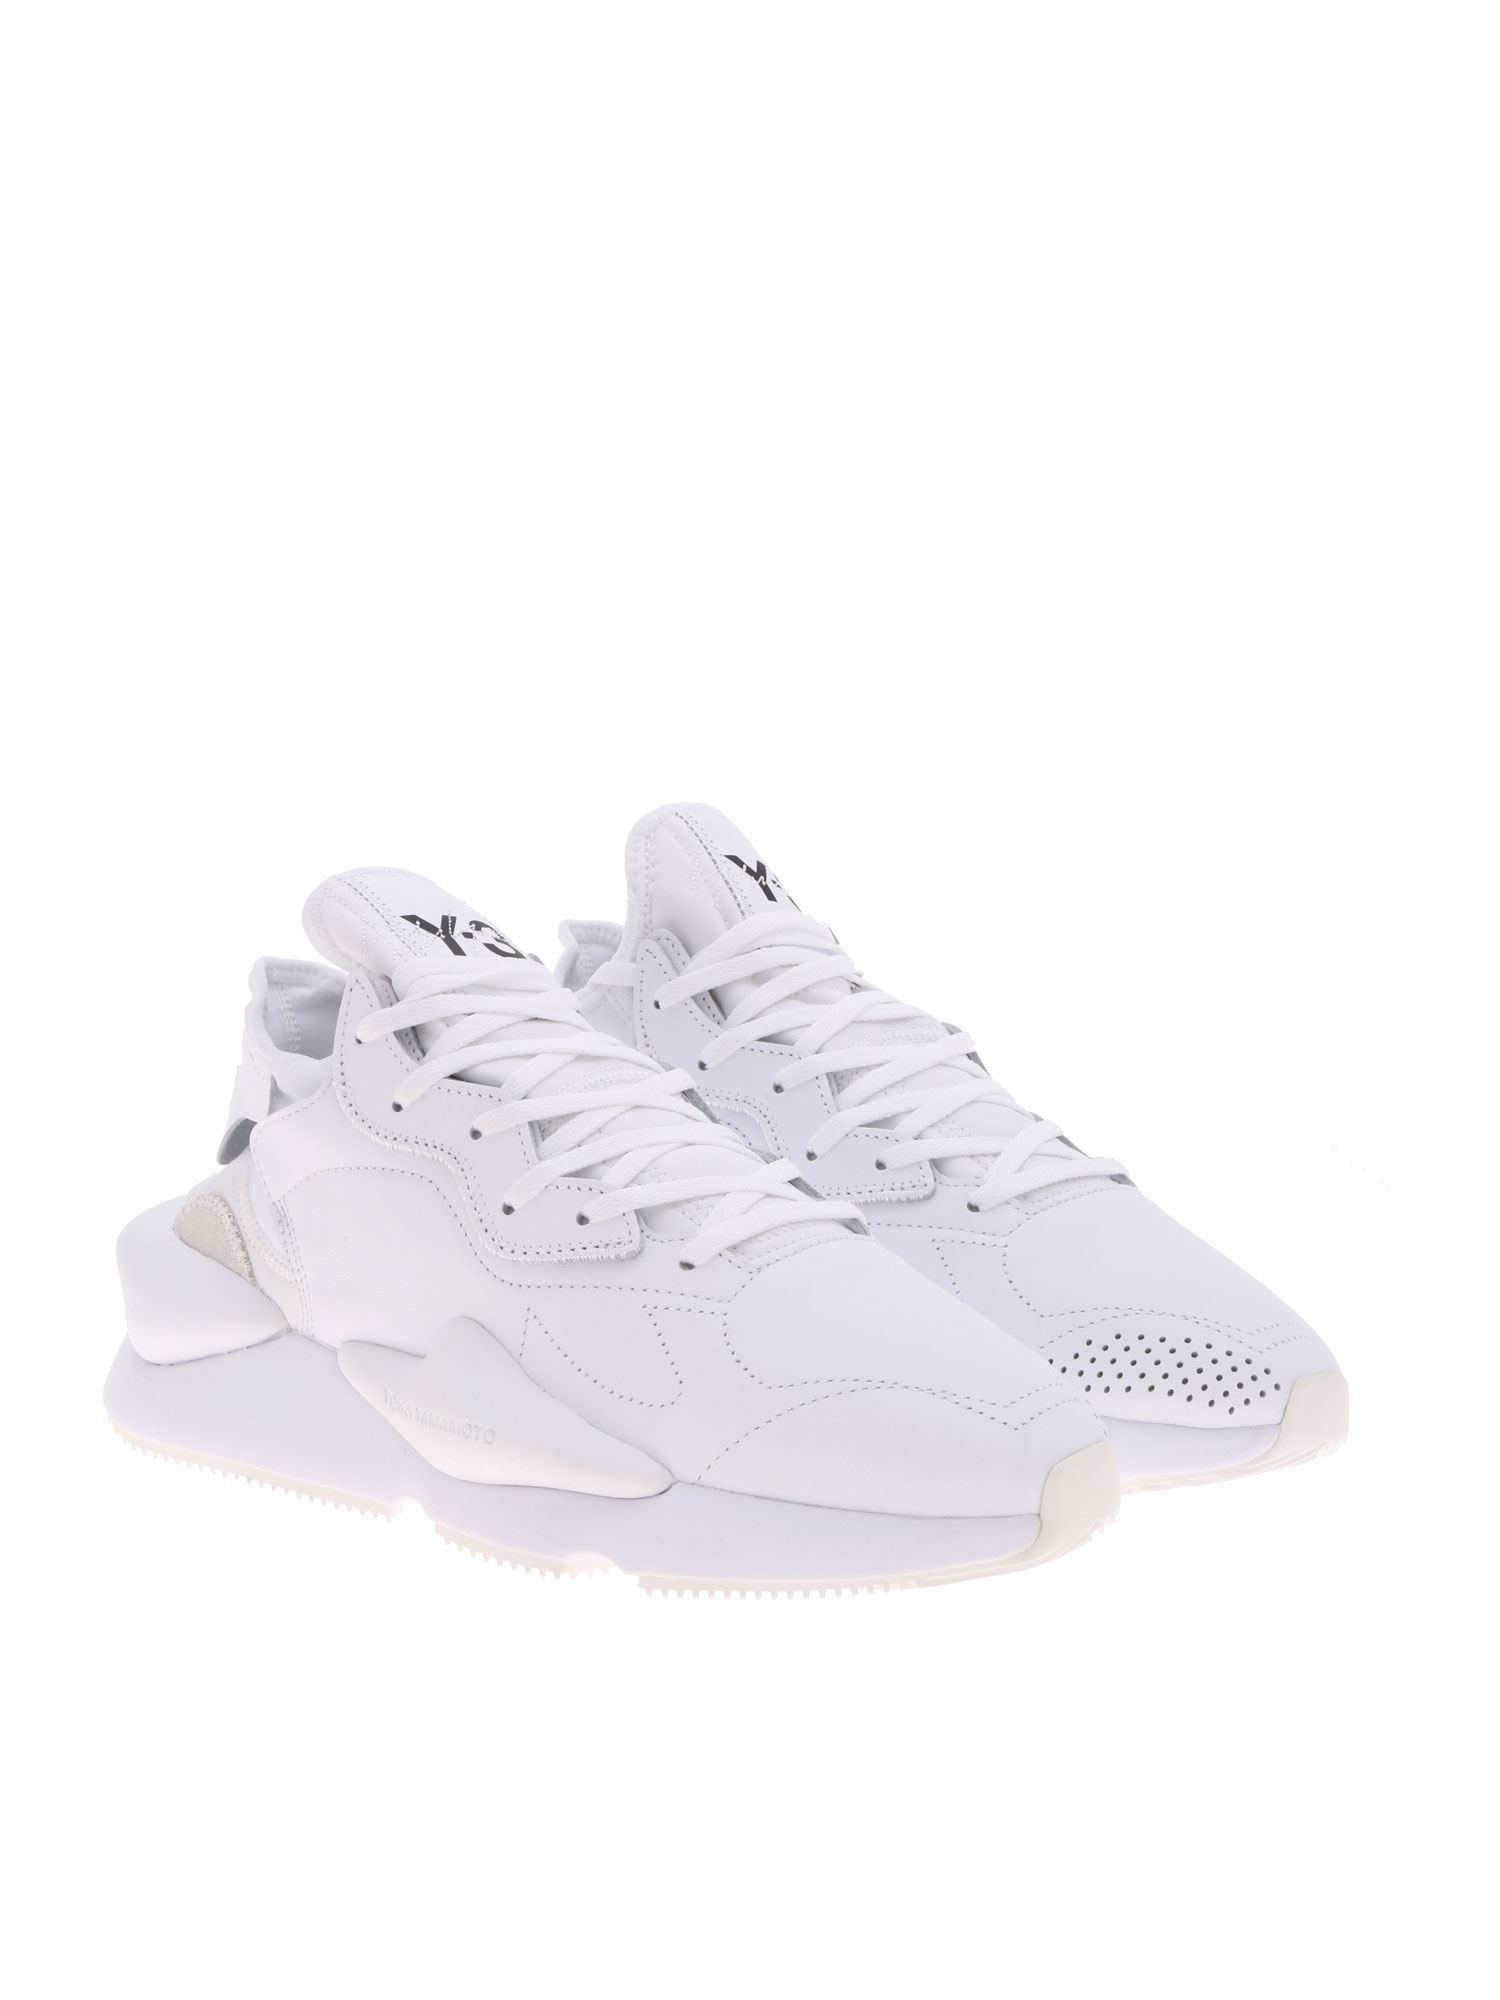 6fc50a1cb Y-3 Kaiwa Sneakers In White Leather in White for Men - Lyst